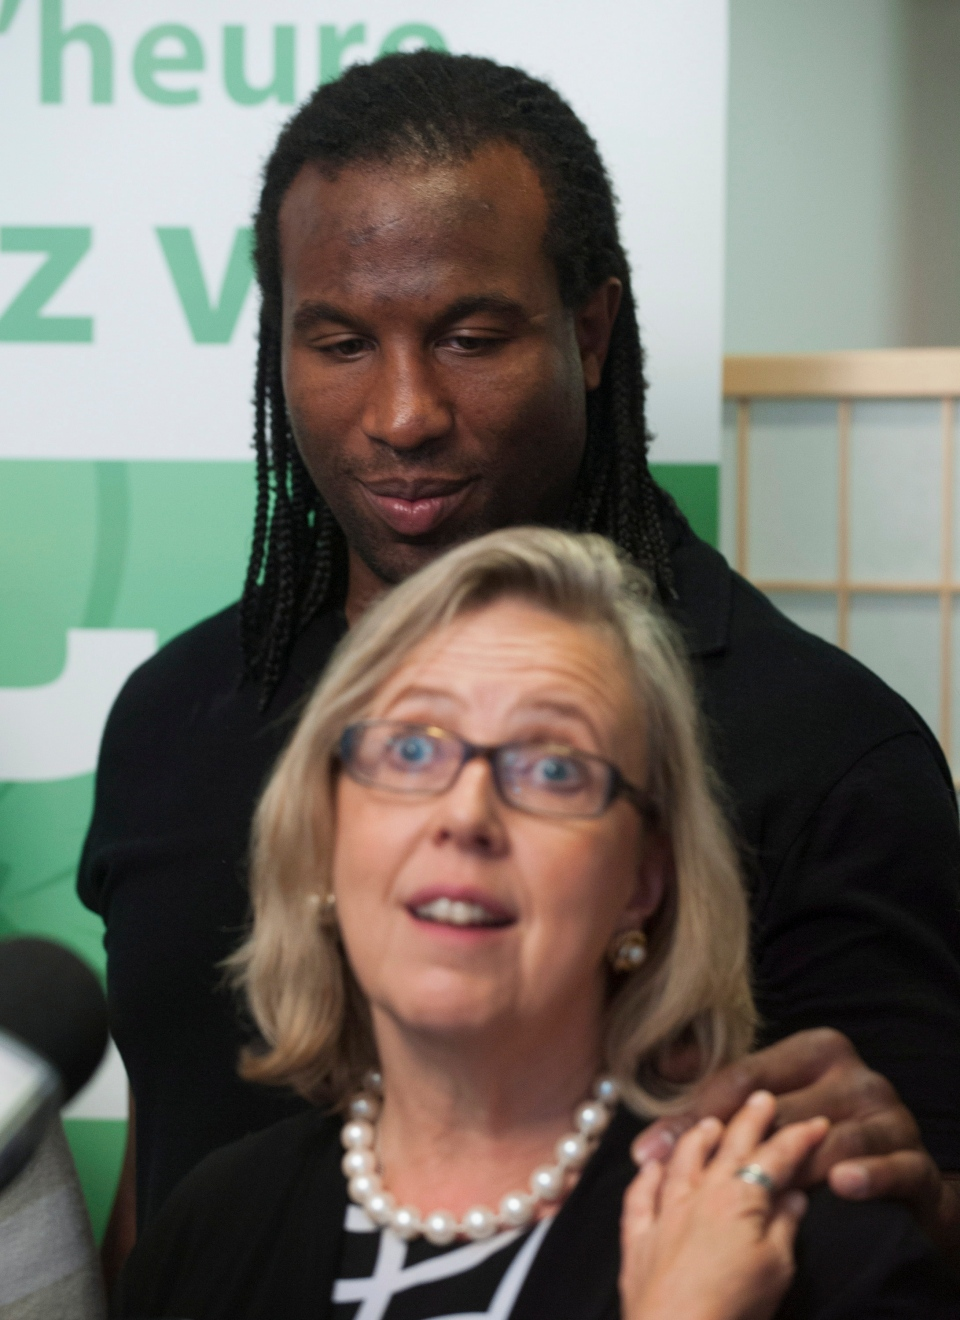 Former NHL tough guy Georges Laraque and Green Party of Canada leader Elizabeth May attend a news conference in Montreal, Friday, Oct. 18, 2013. (Graham Hughes / THE CANADIAN PRESS)